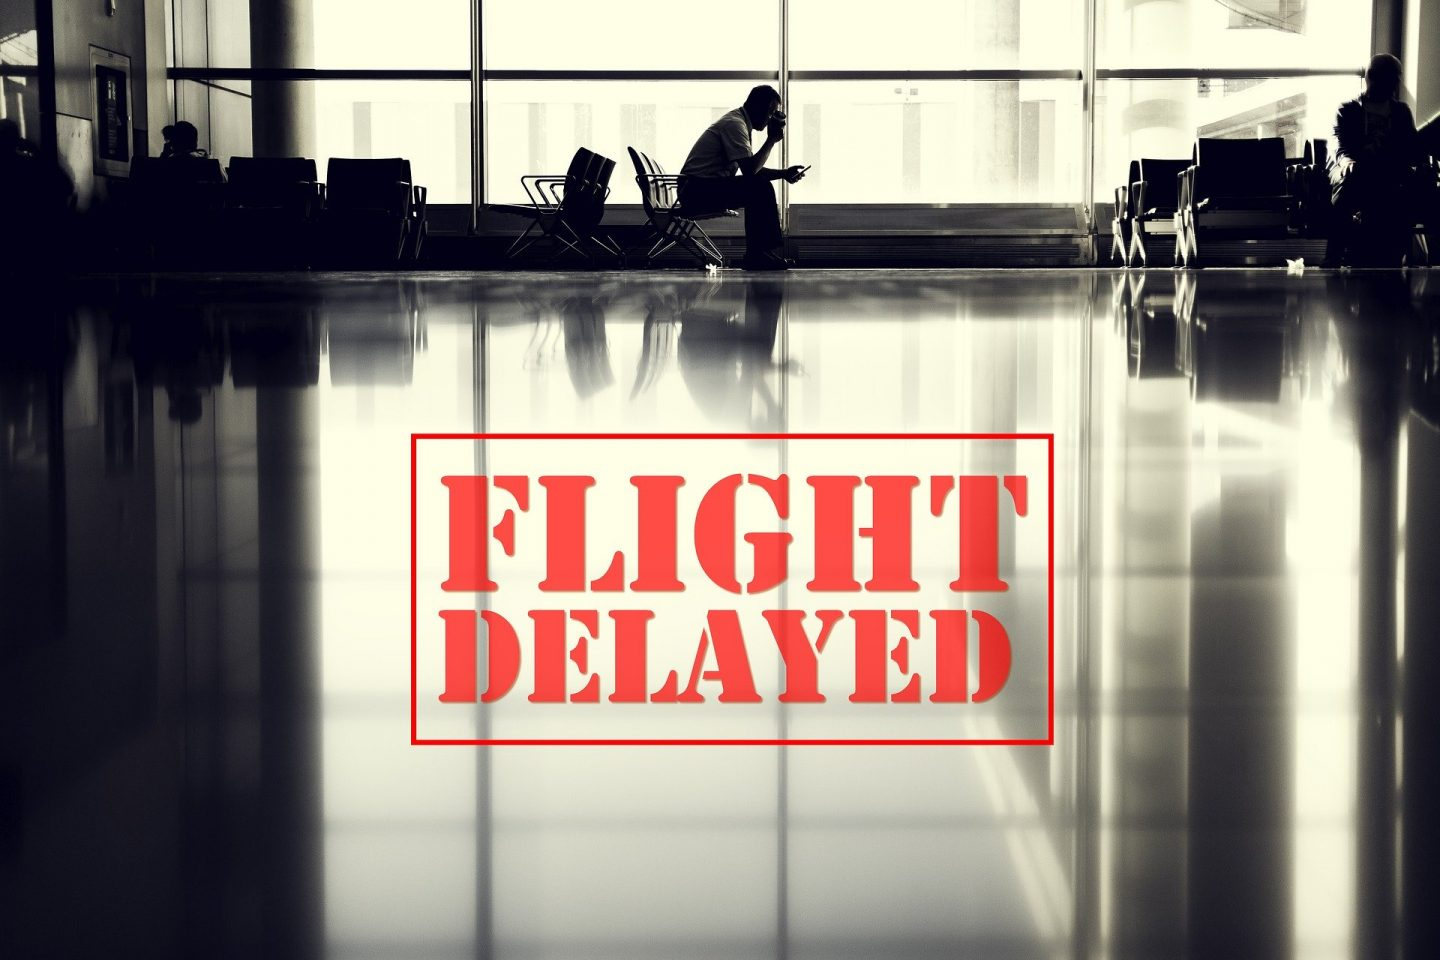 Airport with flight delayed text